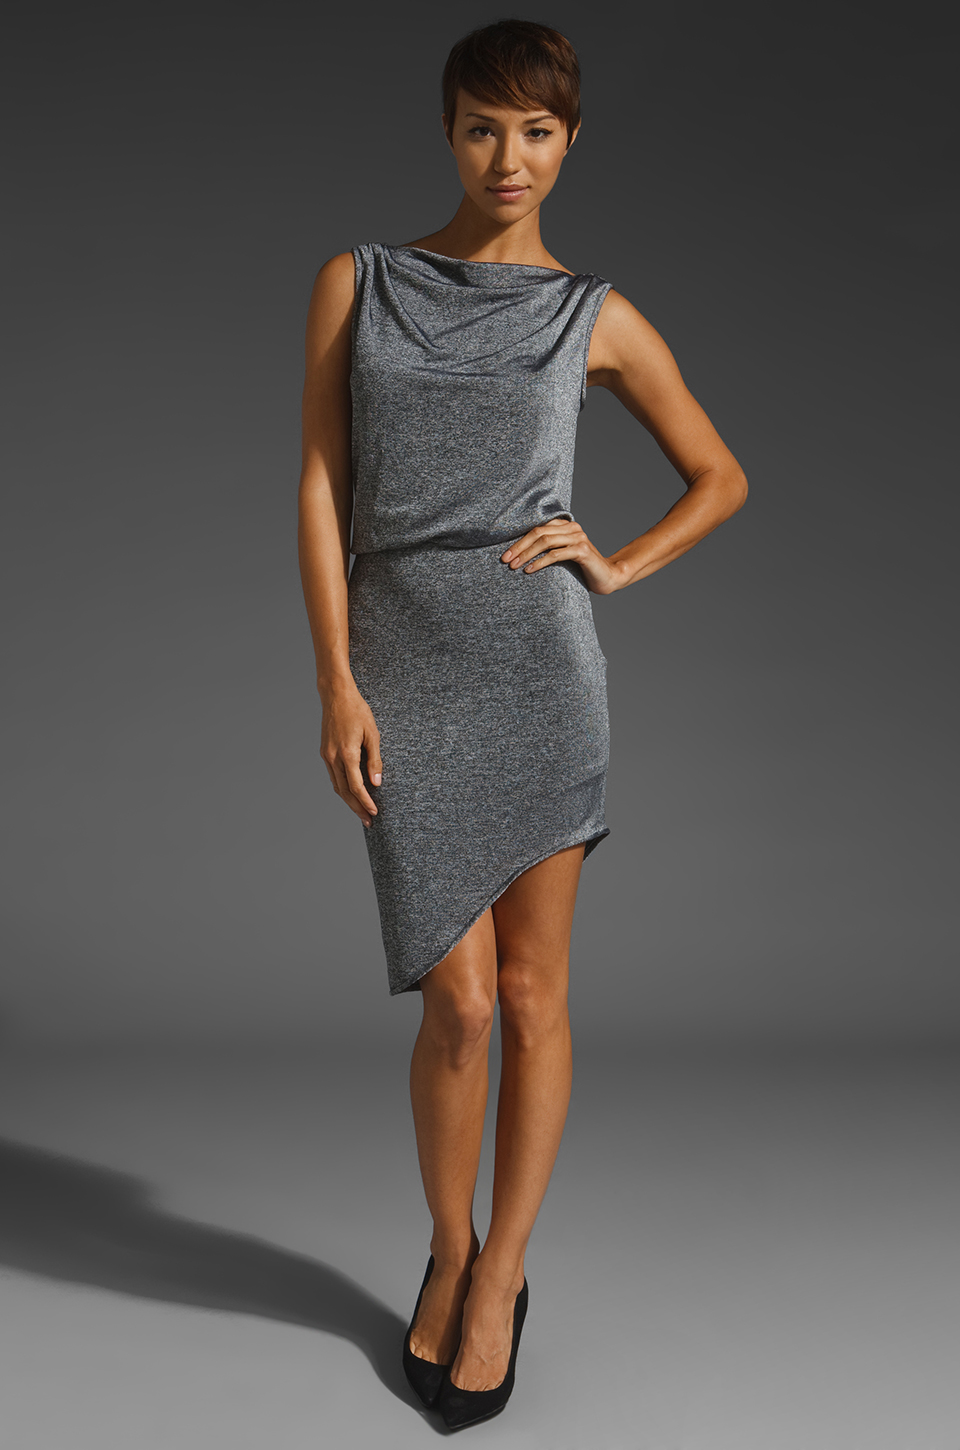 Black Halo Holiday Dress in Thunder